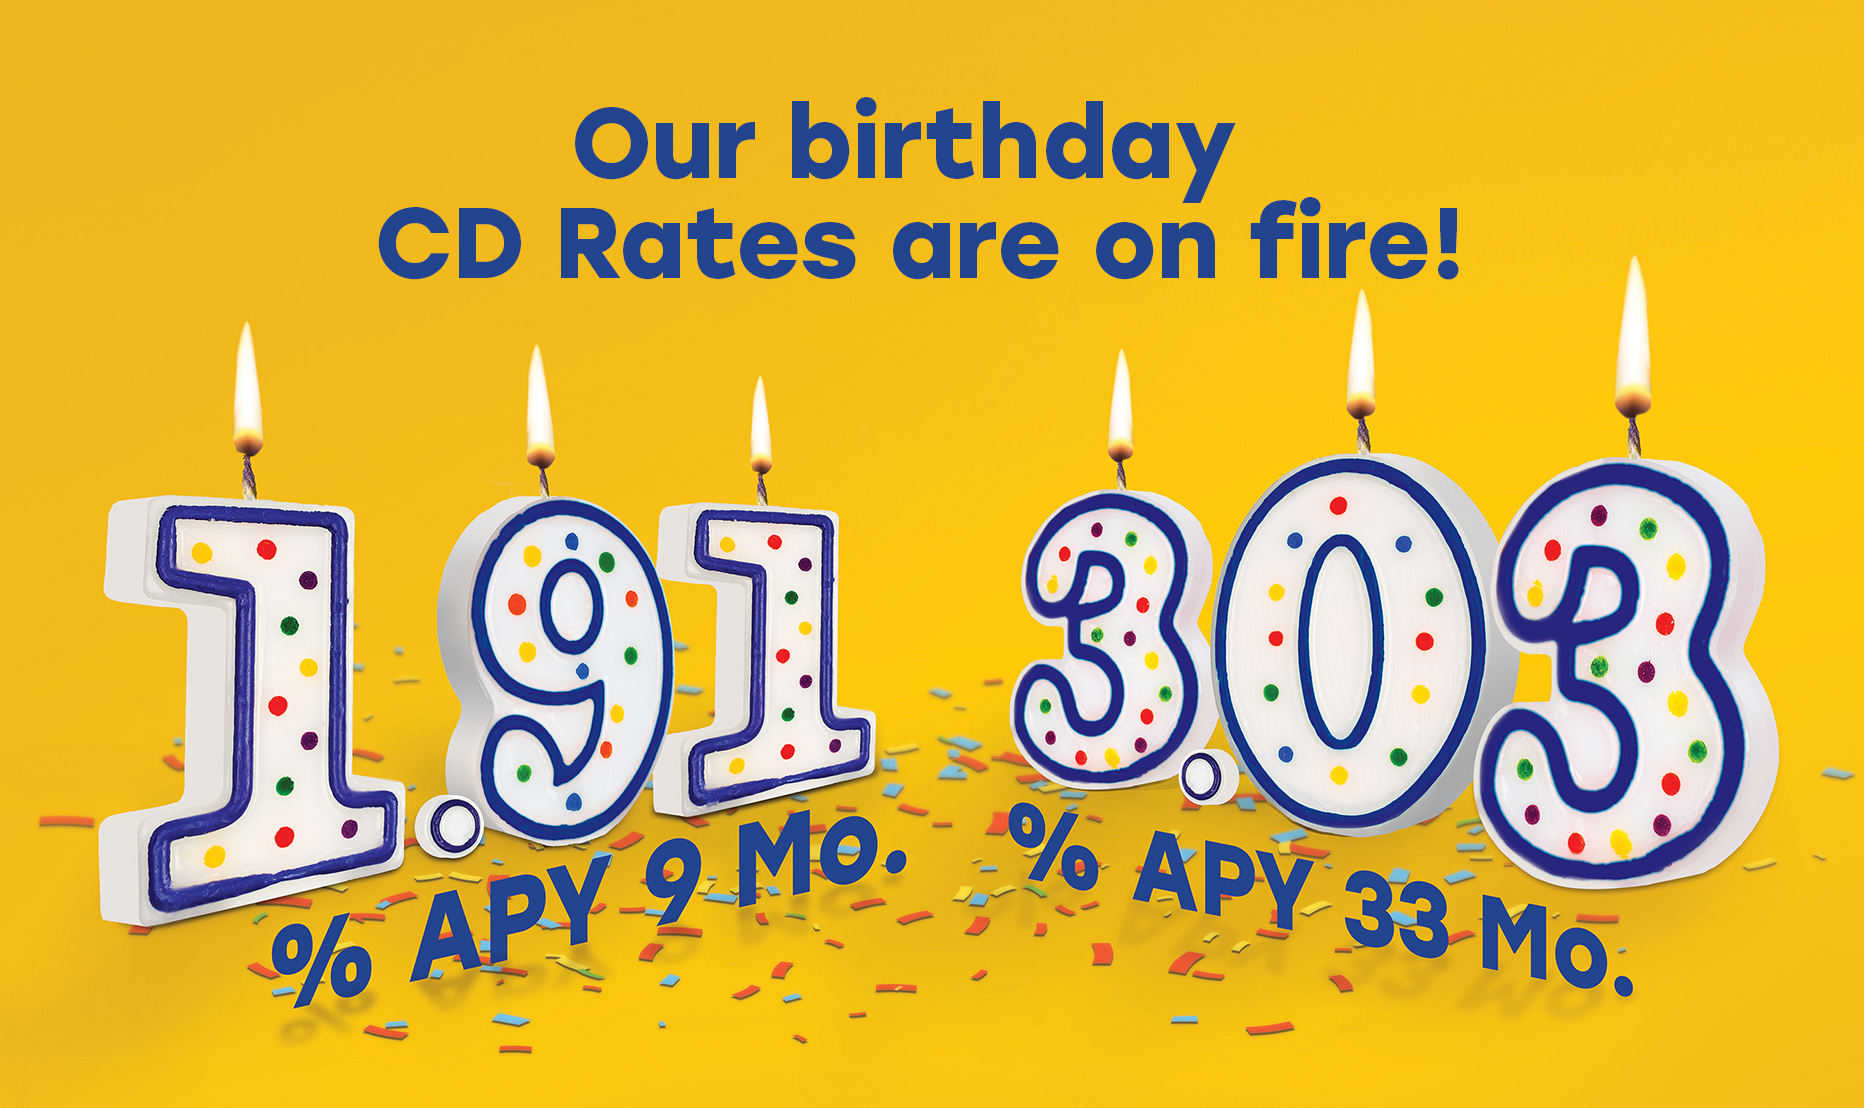 Our birthday CD rates are on fire! 1.91% APY 9 Mo., 3.03% APY 33 Mo.